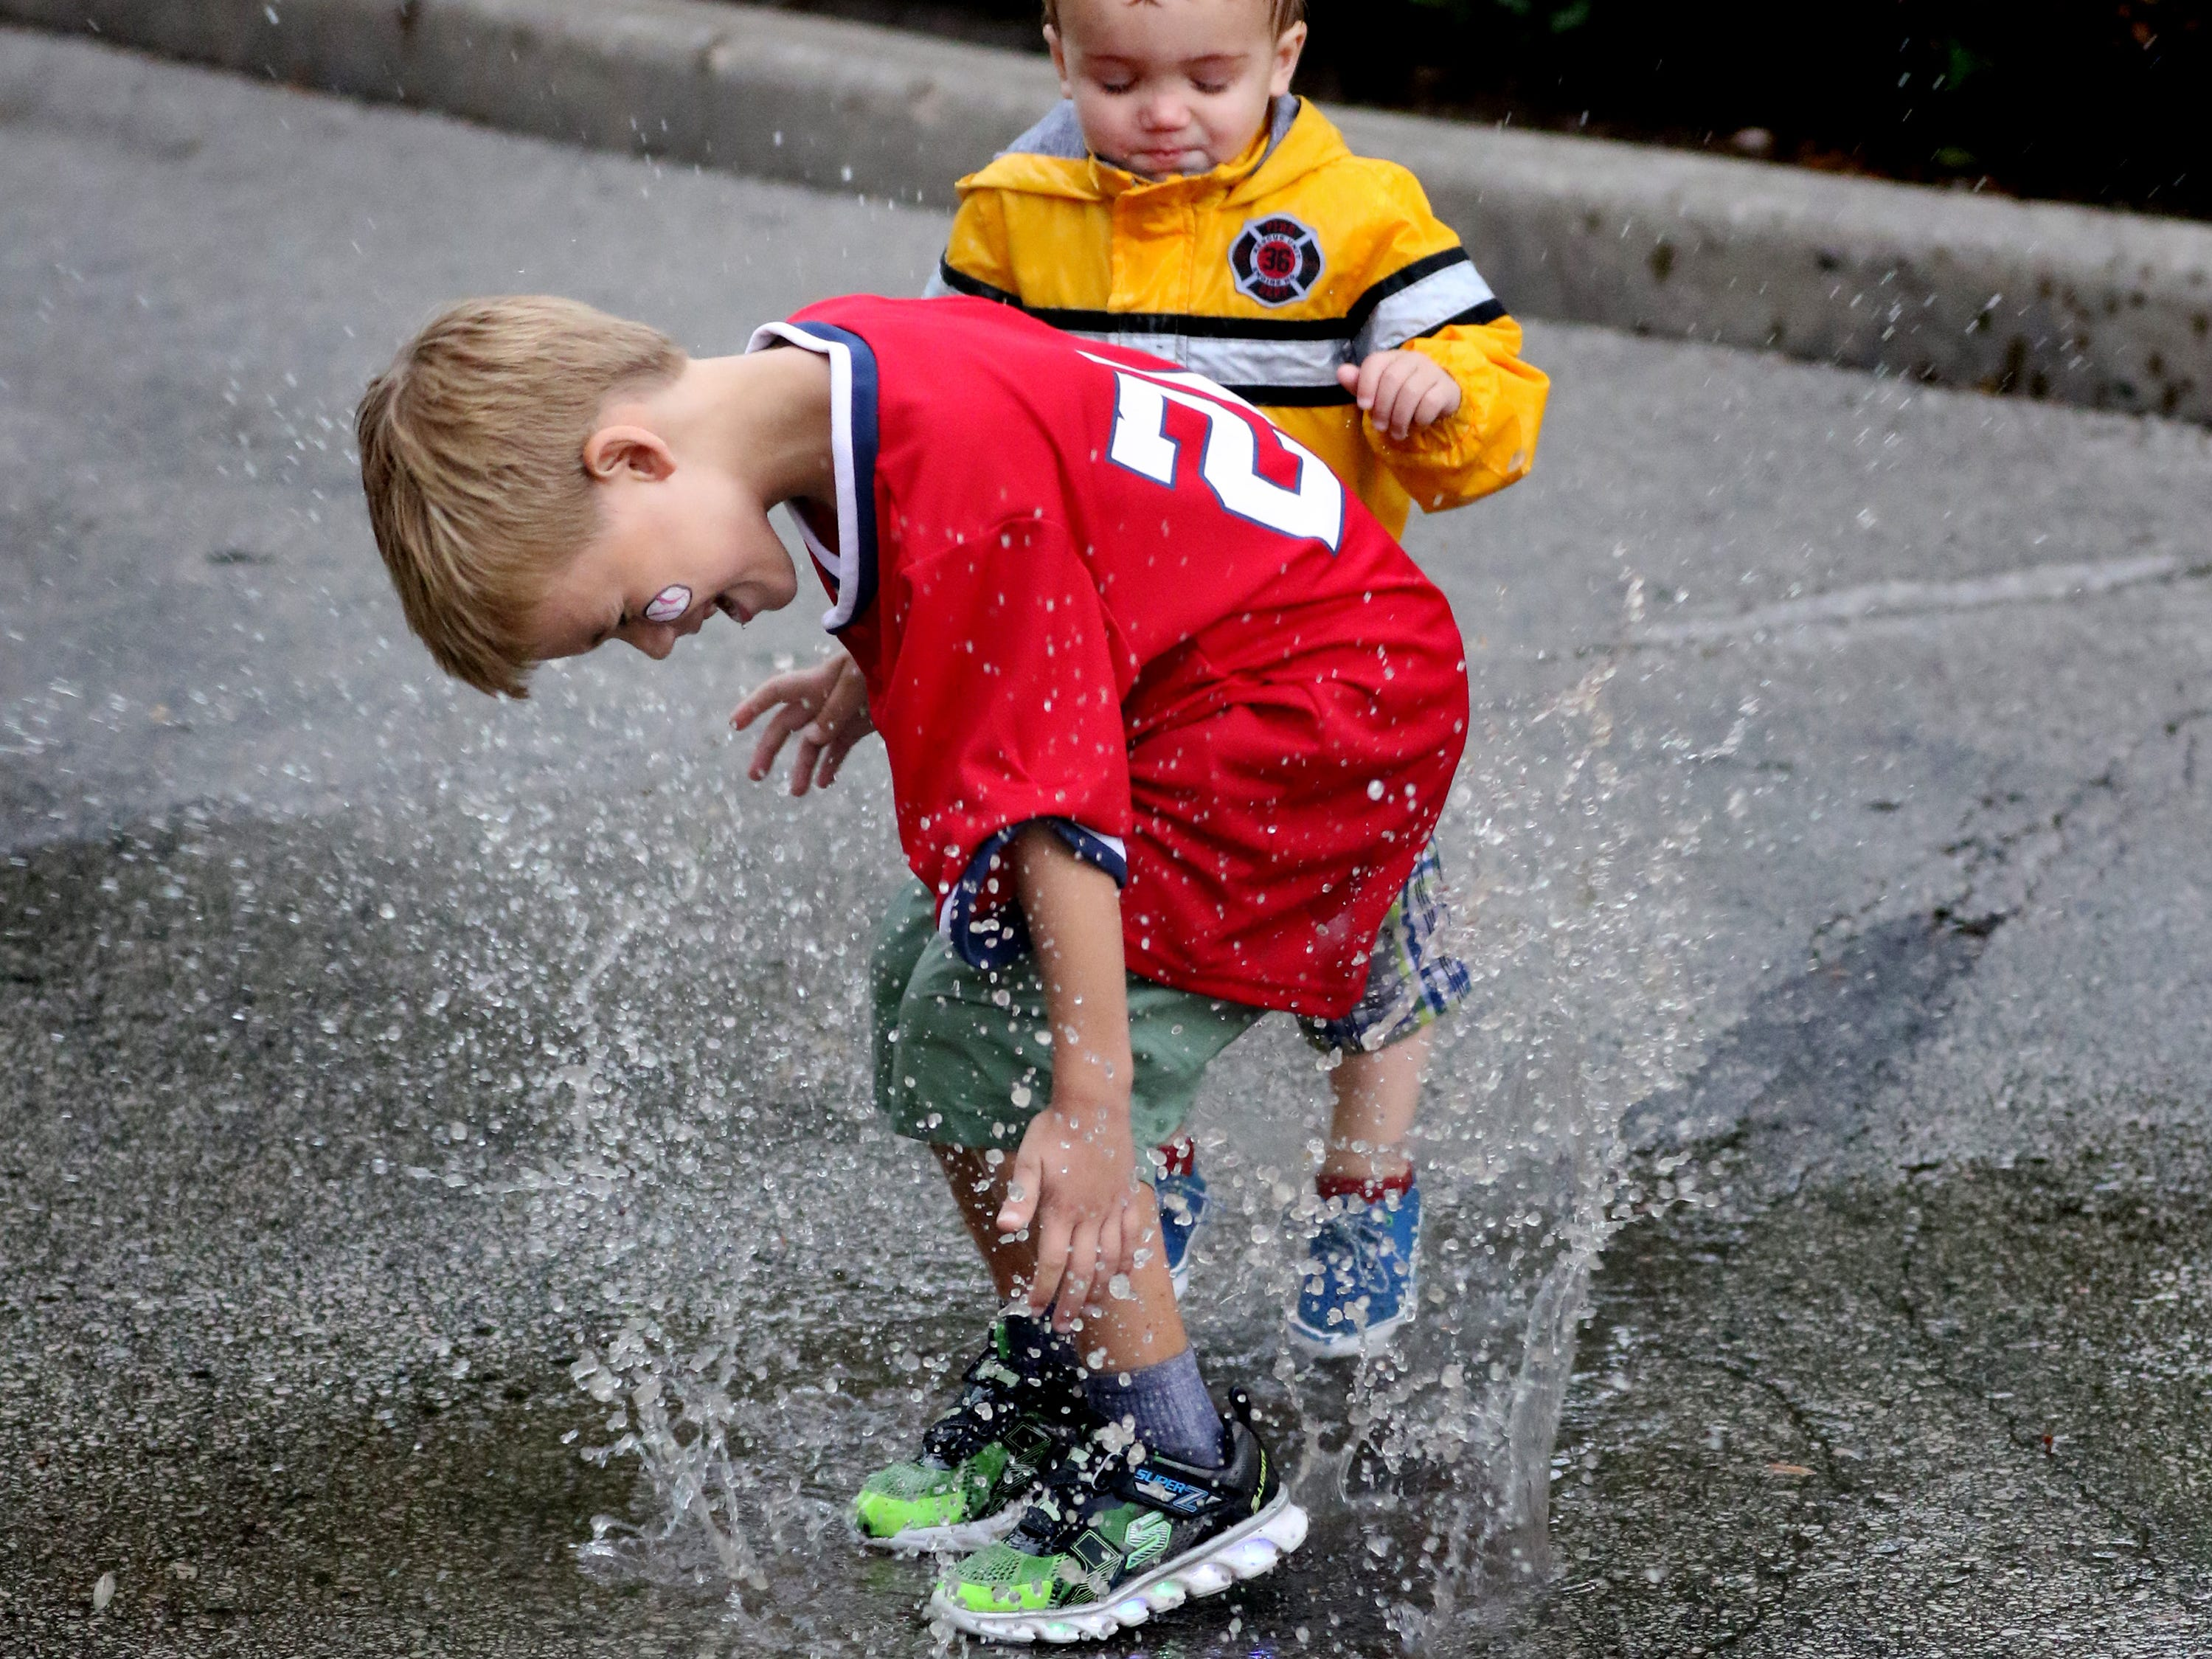 Teddy (front) and Calvin Davis find s puddle to play in on Aug. 9 during the Milwaukee County Zoo's Snooze at the Zoo that sold out 103 camping sites for each of the event's four nights. Campers would set up at 5 p.m. for a night of special events, then be packed up by 9 in the morning.